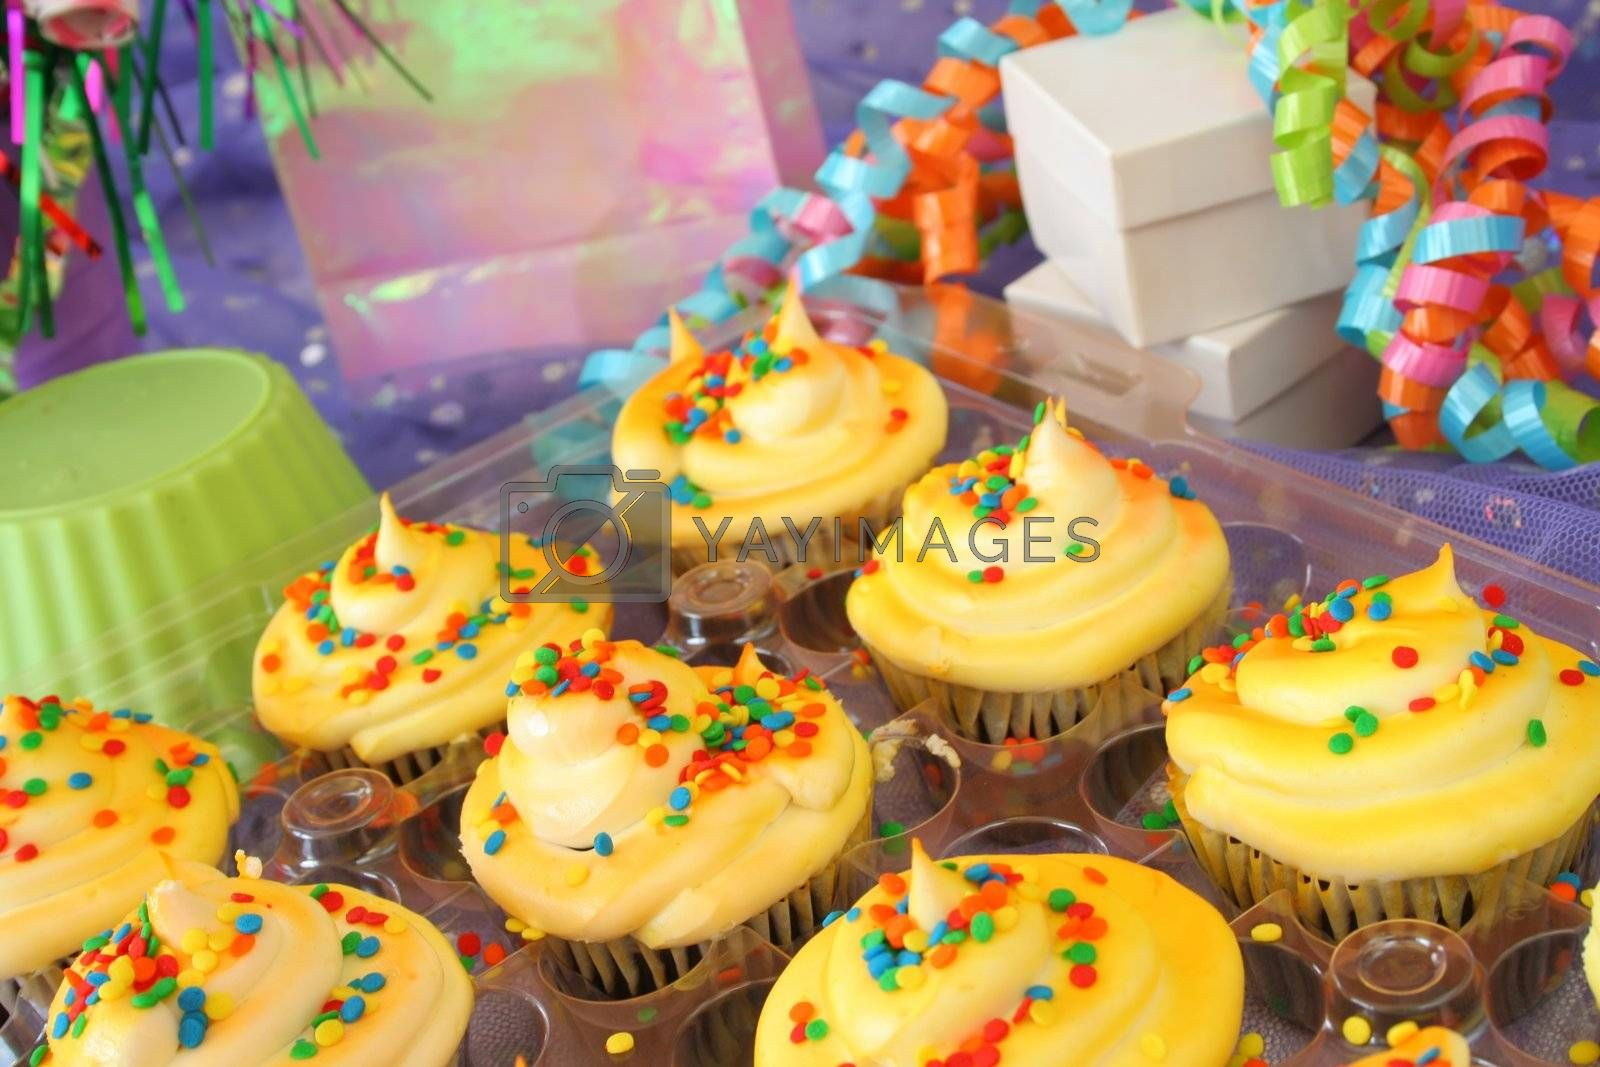 A grouping of beautifully colored cup cakes with sprinkles and party supplies.  Used a shallow DOF and selective focus.